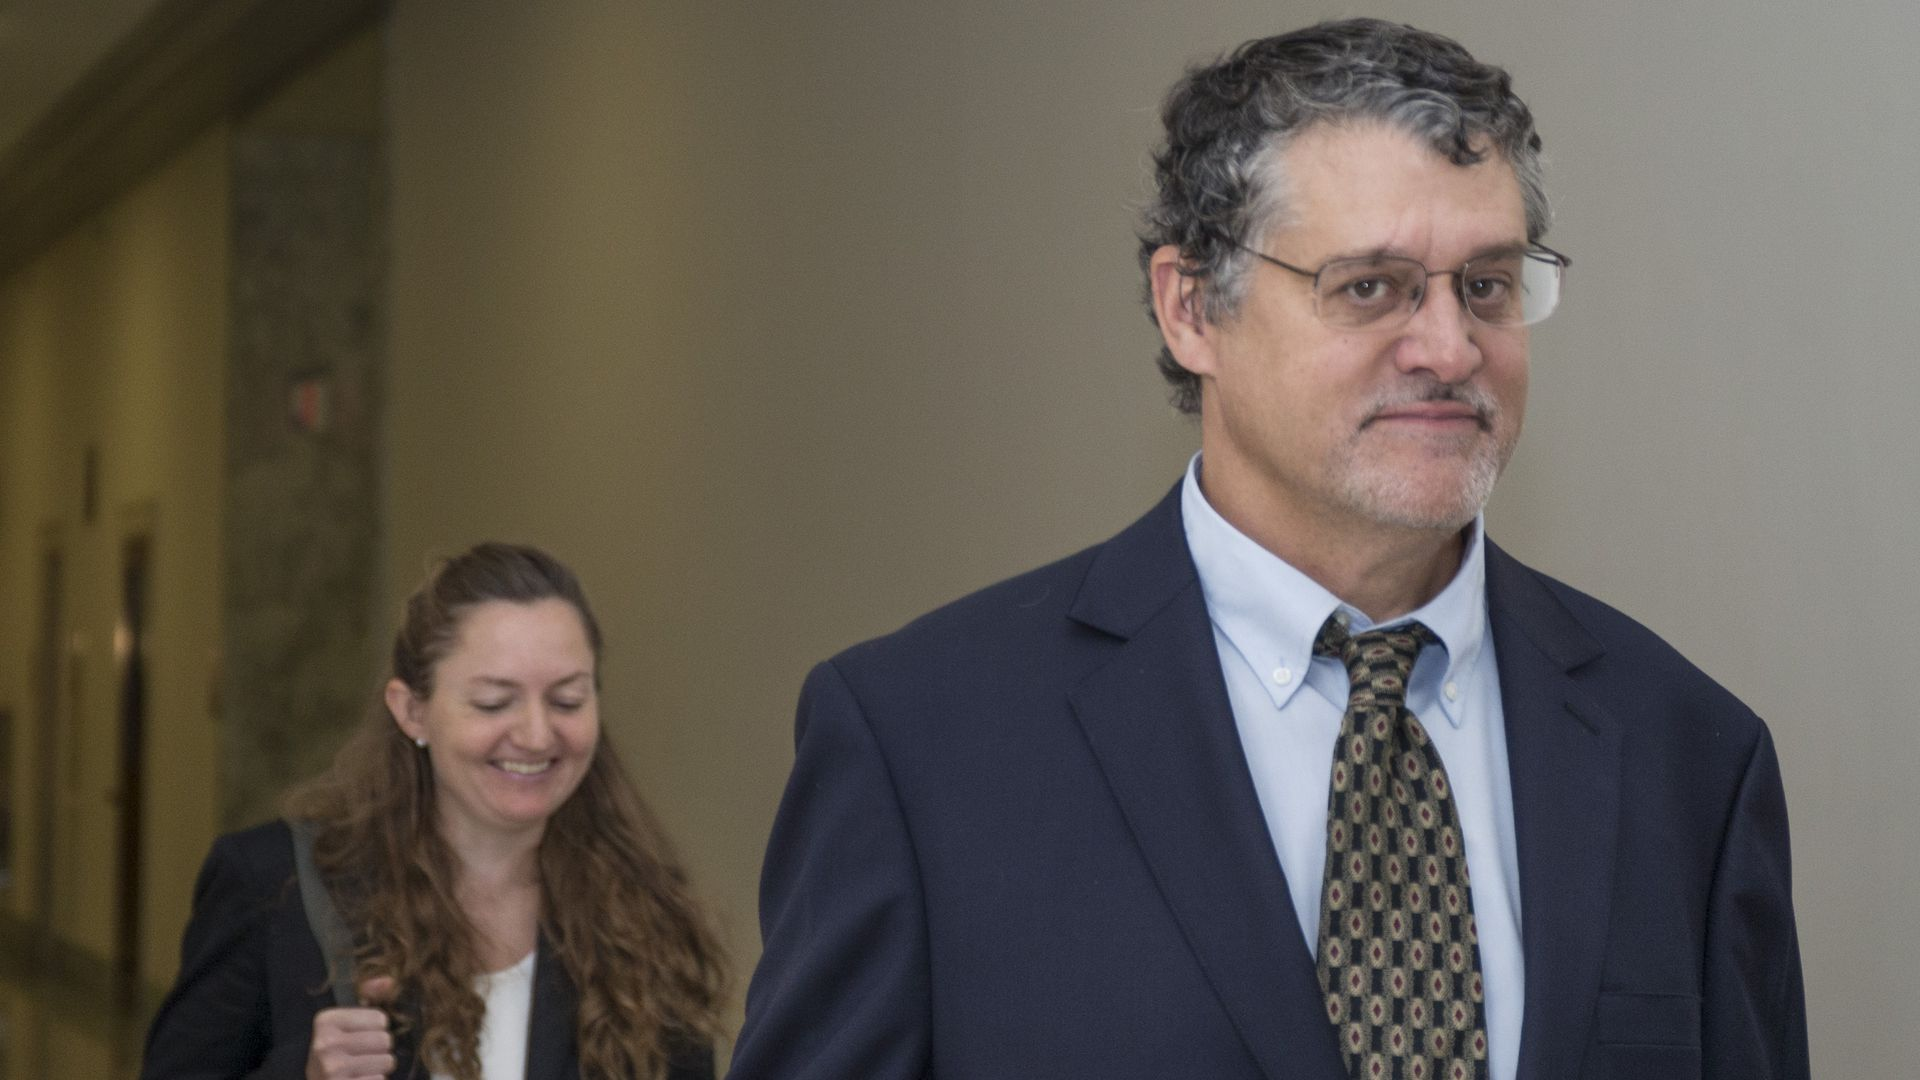 Glenn Simpson looks at the camera as he walks into a hearing.